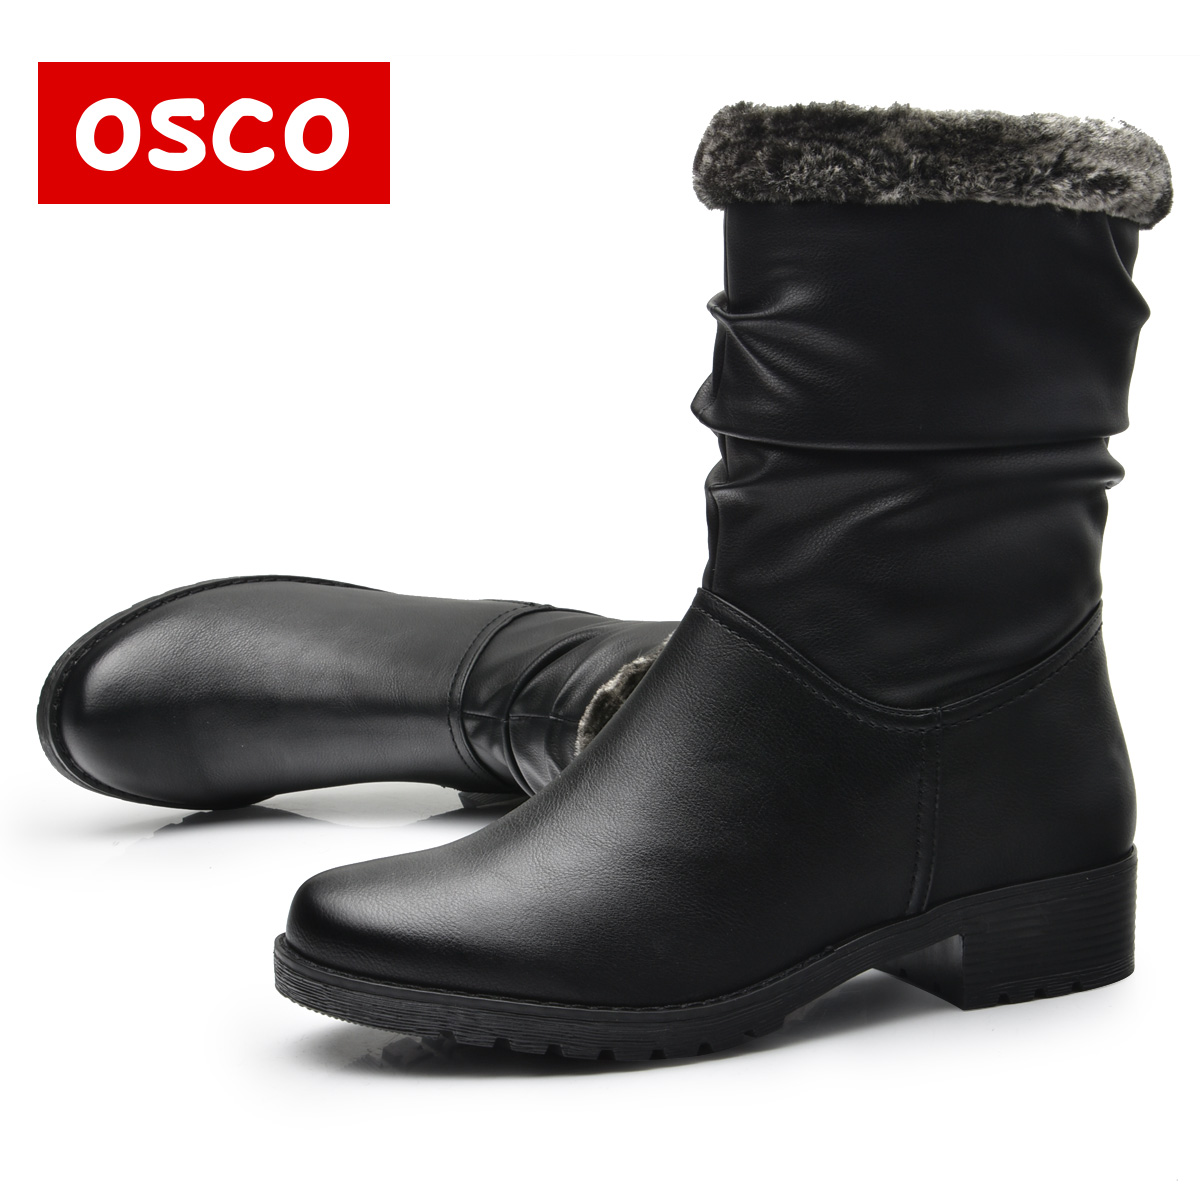 OSCO Brand New Style Winter Women Boots Warm PU Leather Snow Boots Female Round Toe Mid-Calf Fashion Flats Boots#116F06YB eiswelt women mid calf boots winter snow boots warm round toe flat shoes female fashion lace up boots plus size zqs182 page 8